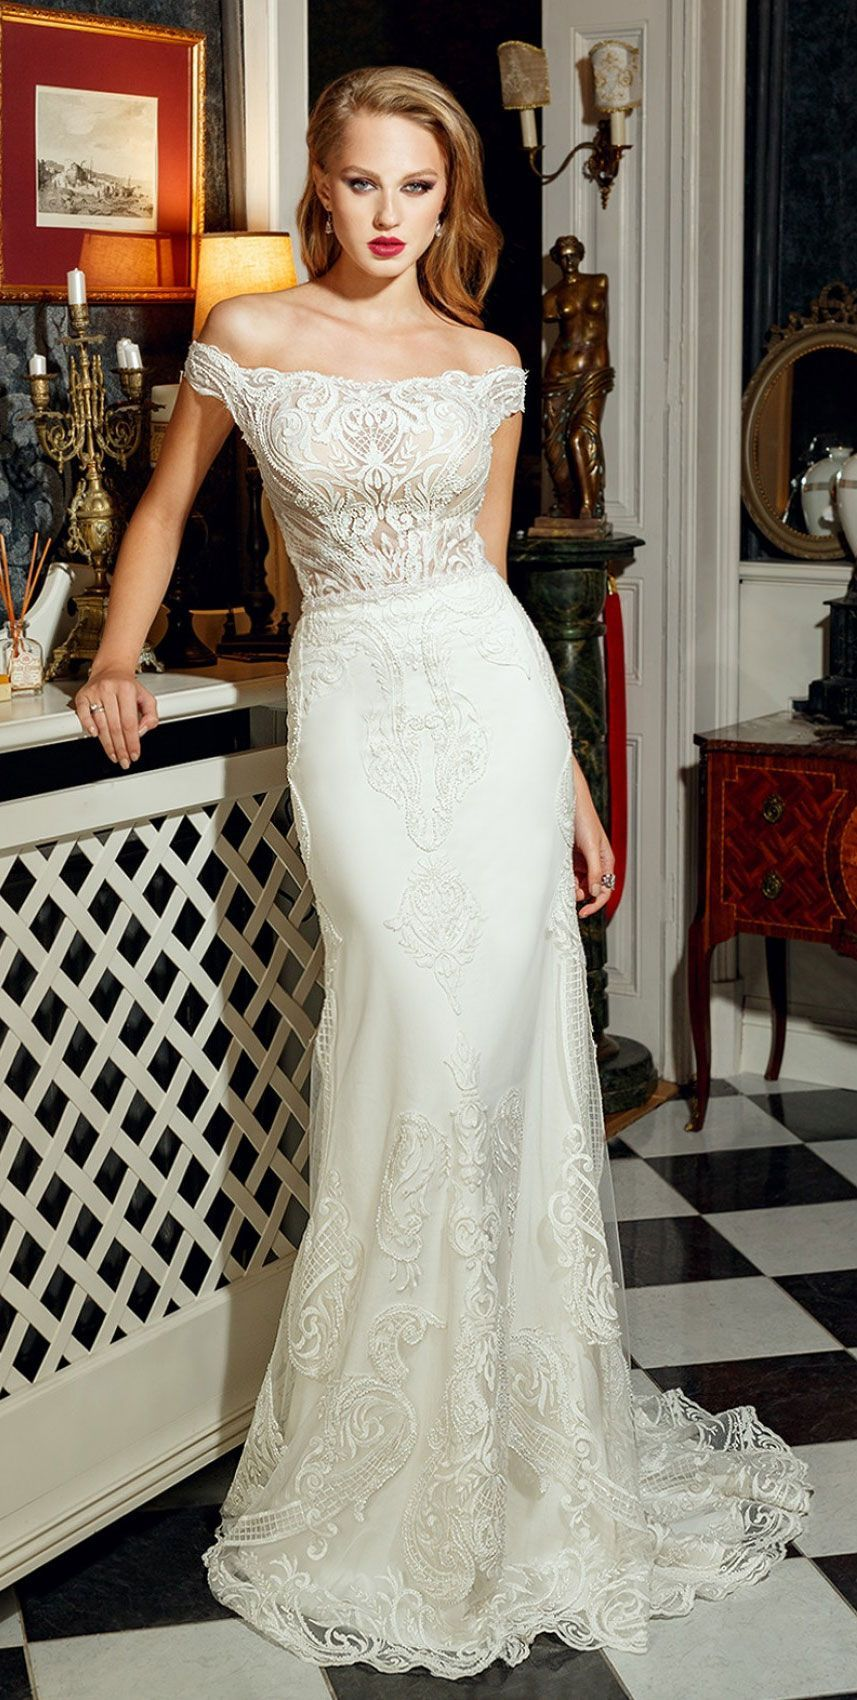 Bien savy uclet me love youud bridal collection wedding gowns